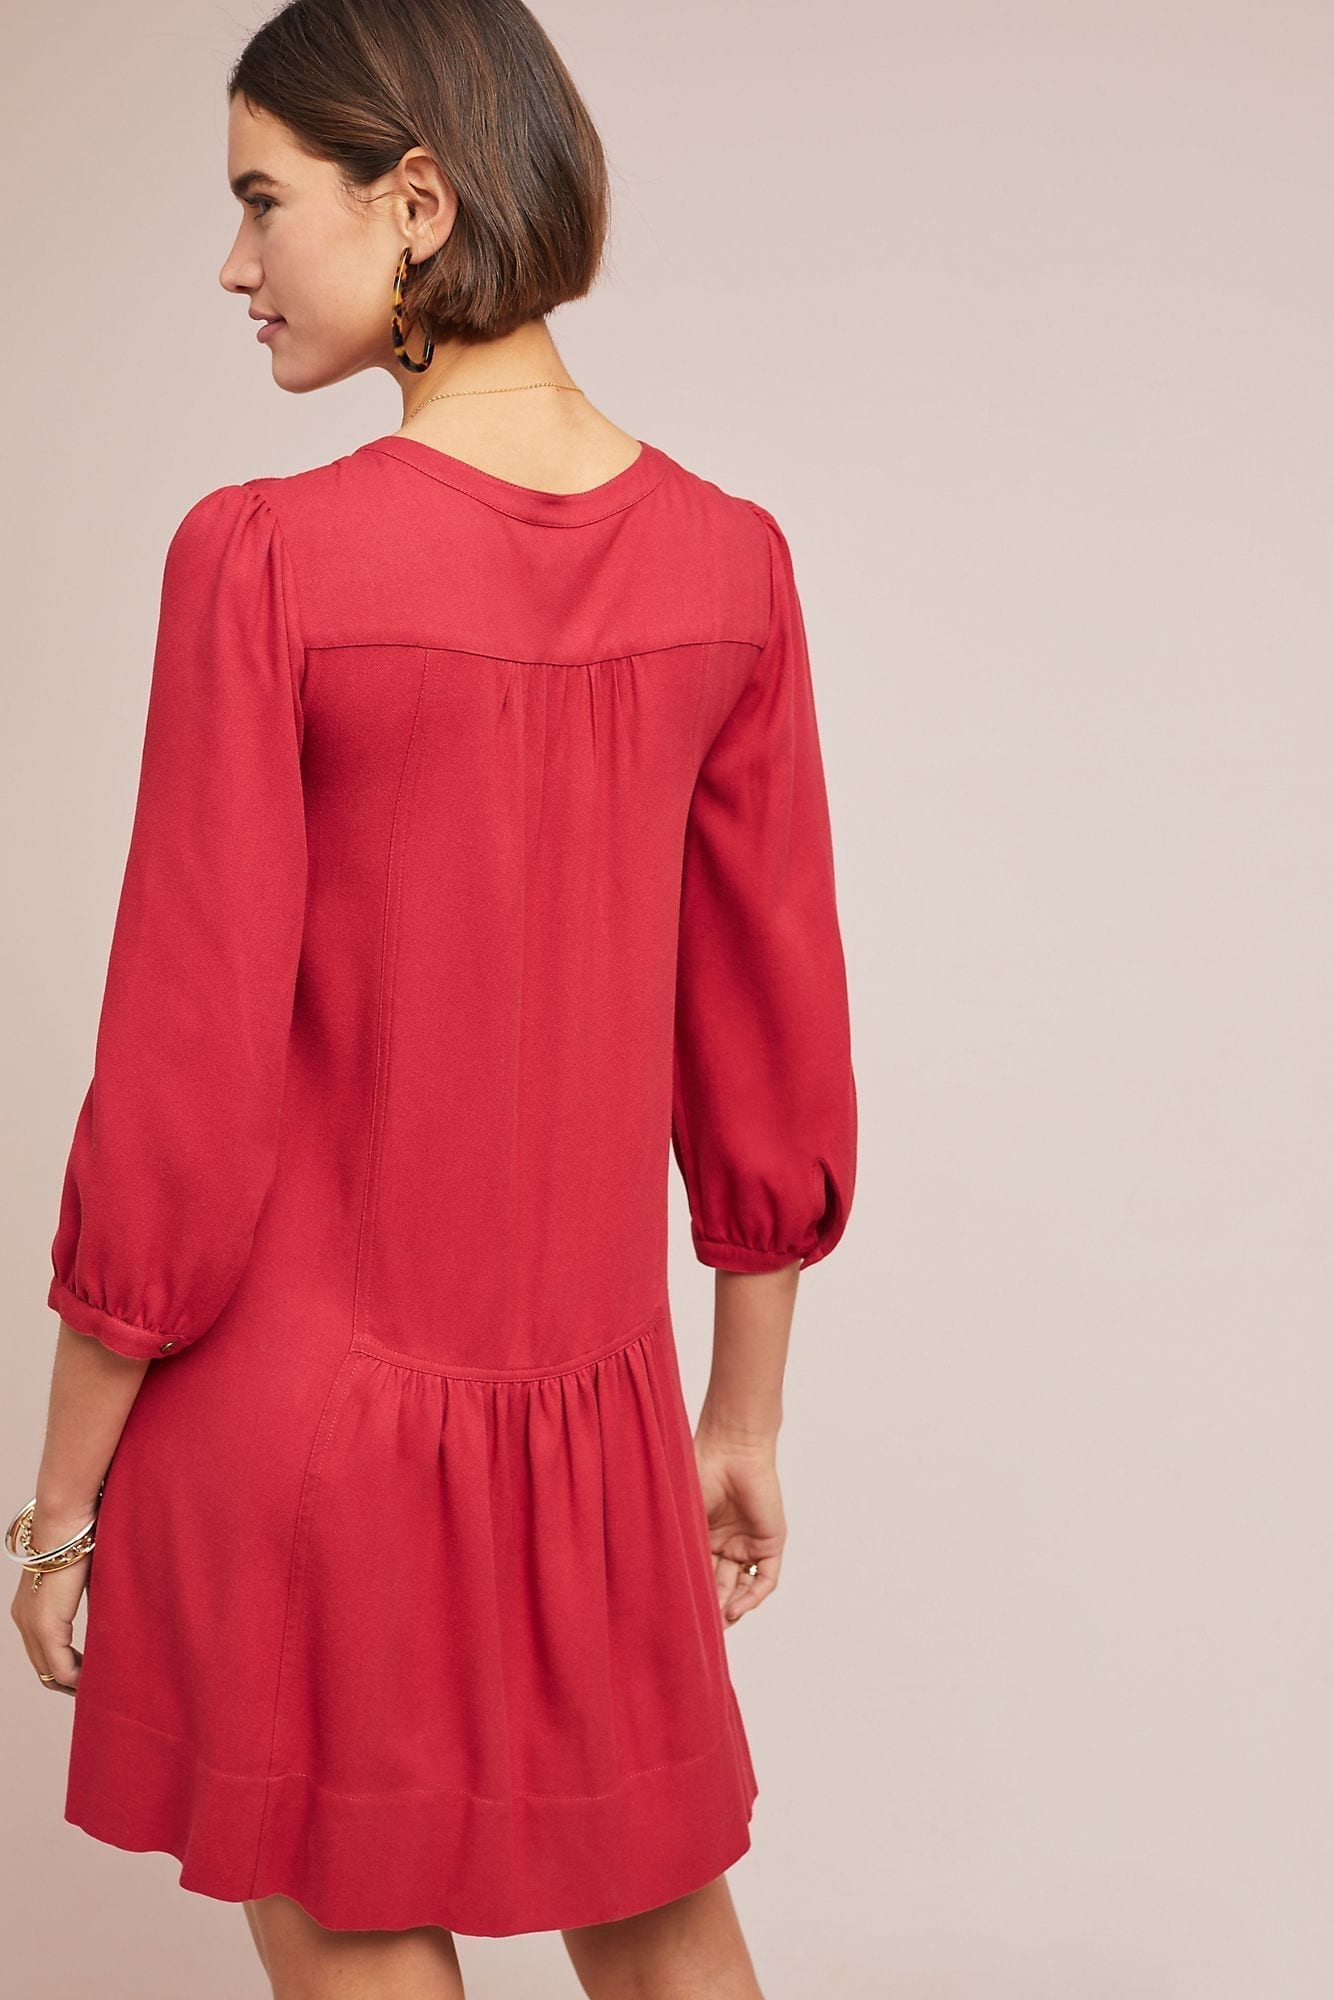 b4f8b1b9f82c ANTHROPOLOGIE Dubois Embroidered Tunic Rose Dress - We Select Dresses